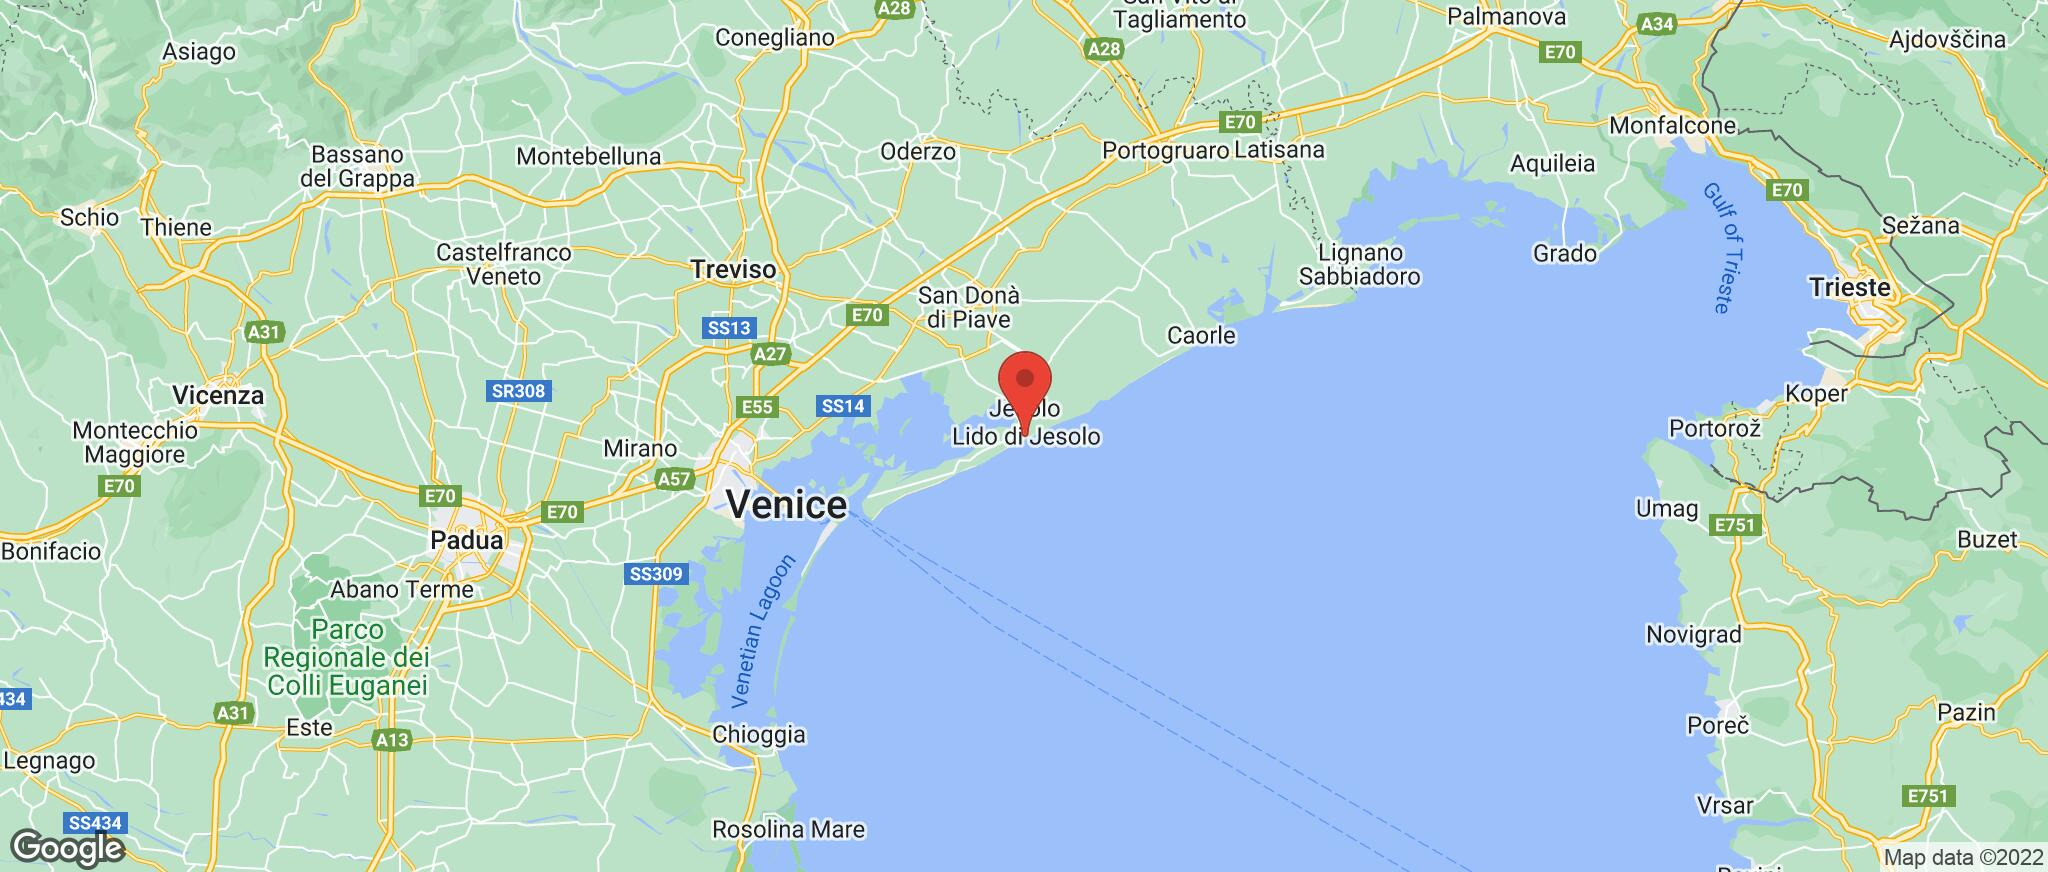 Map showing the location of Lido Di Jesolo